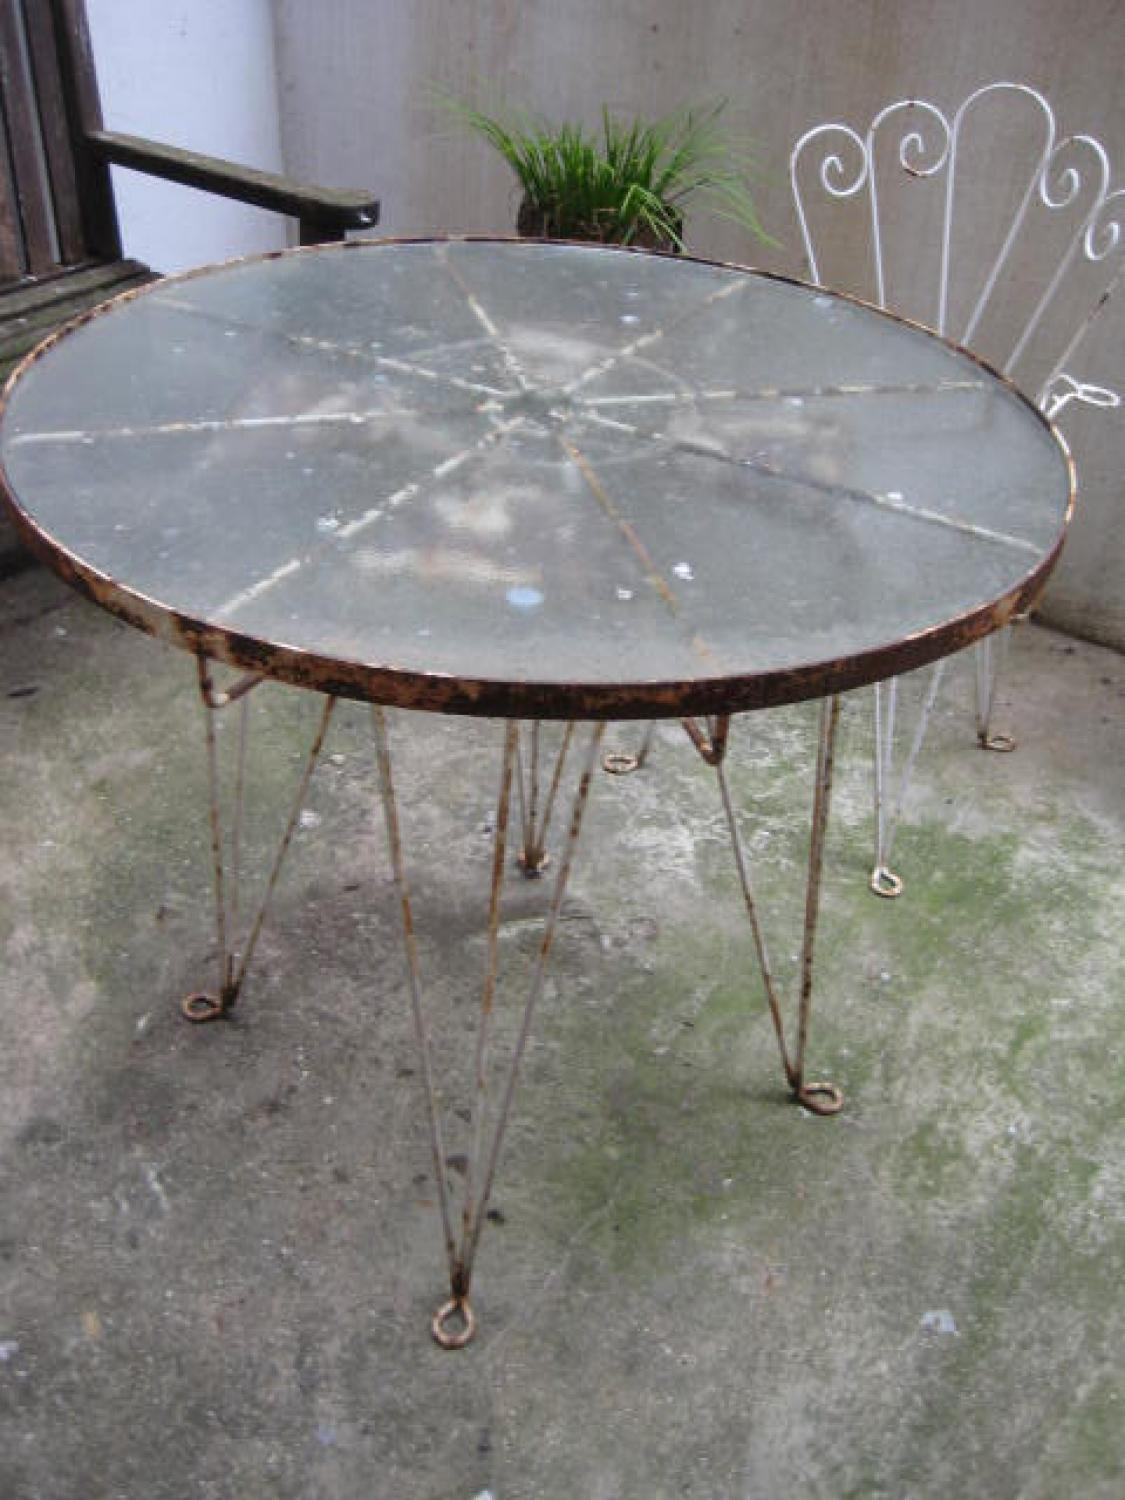 wrought iron garden table/chairs